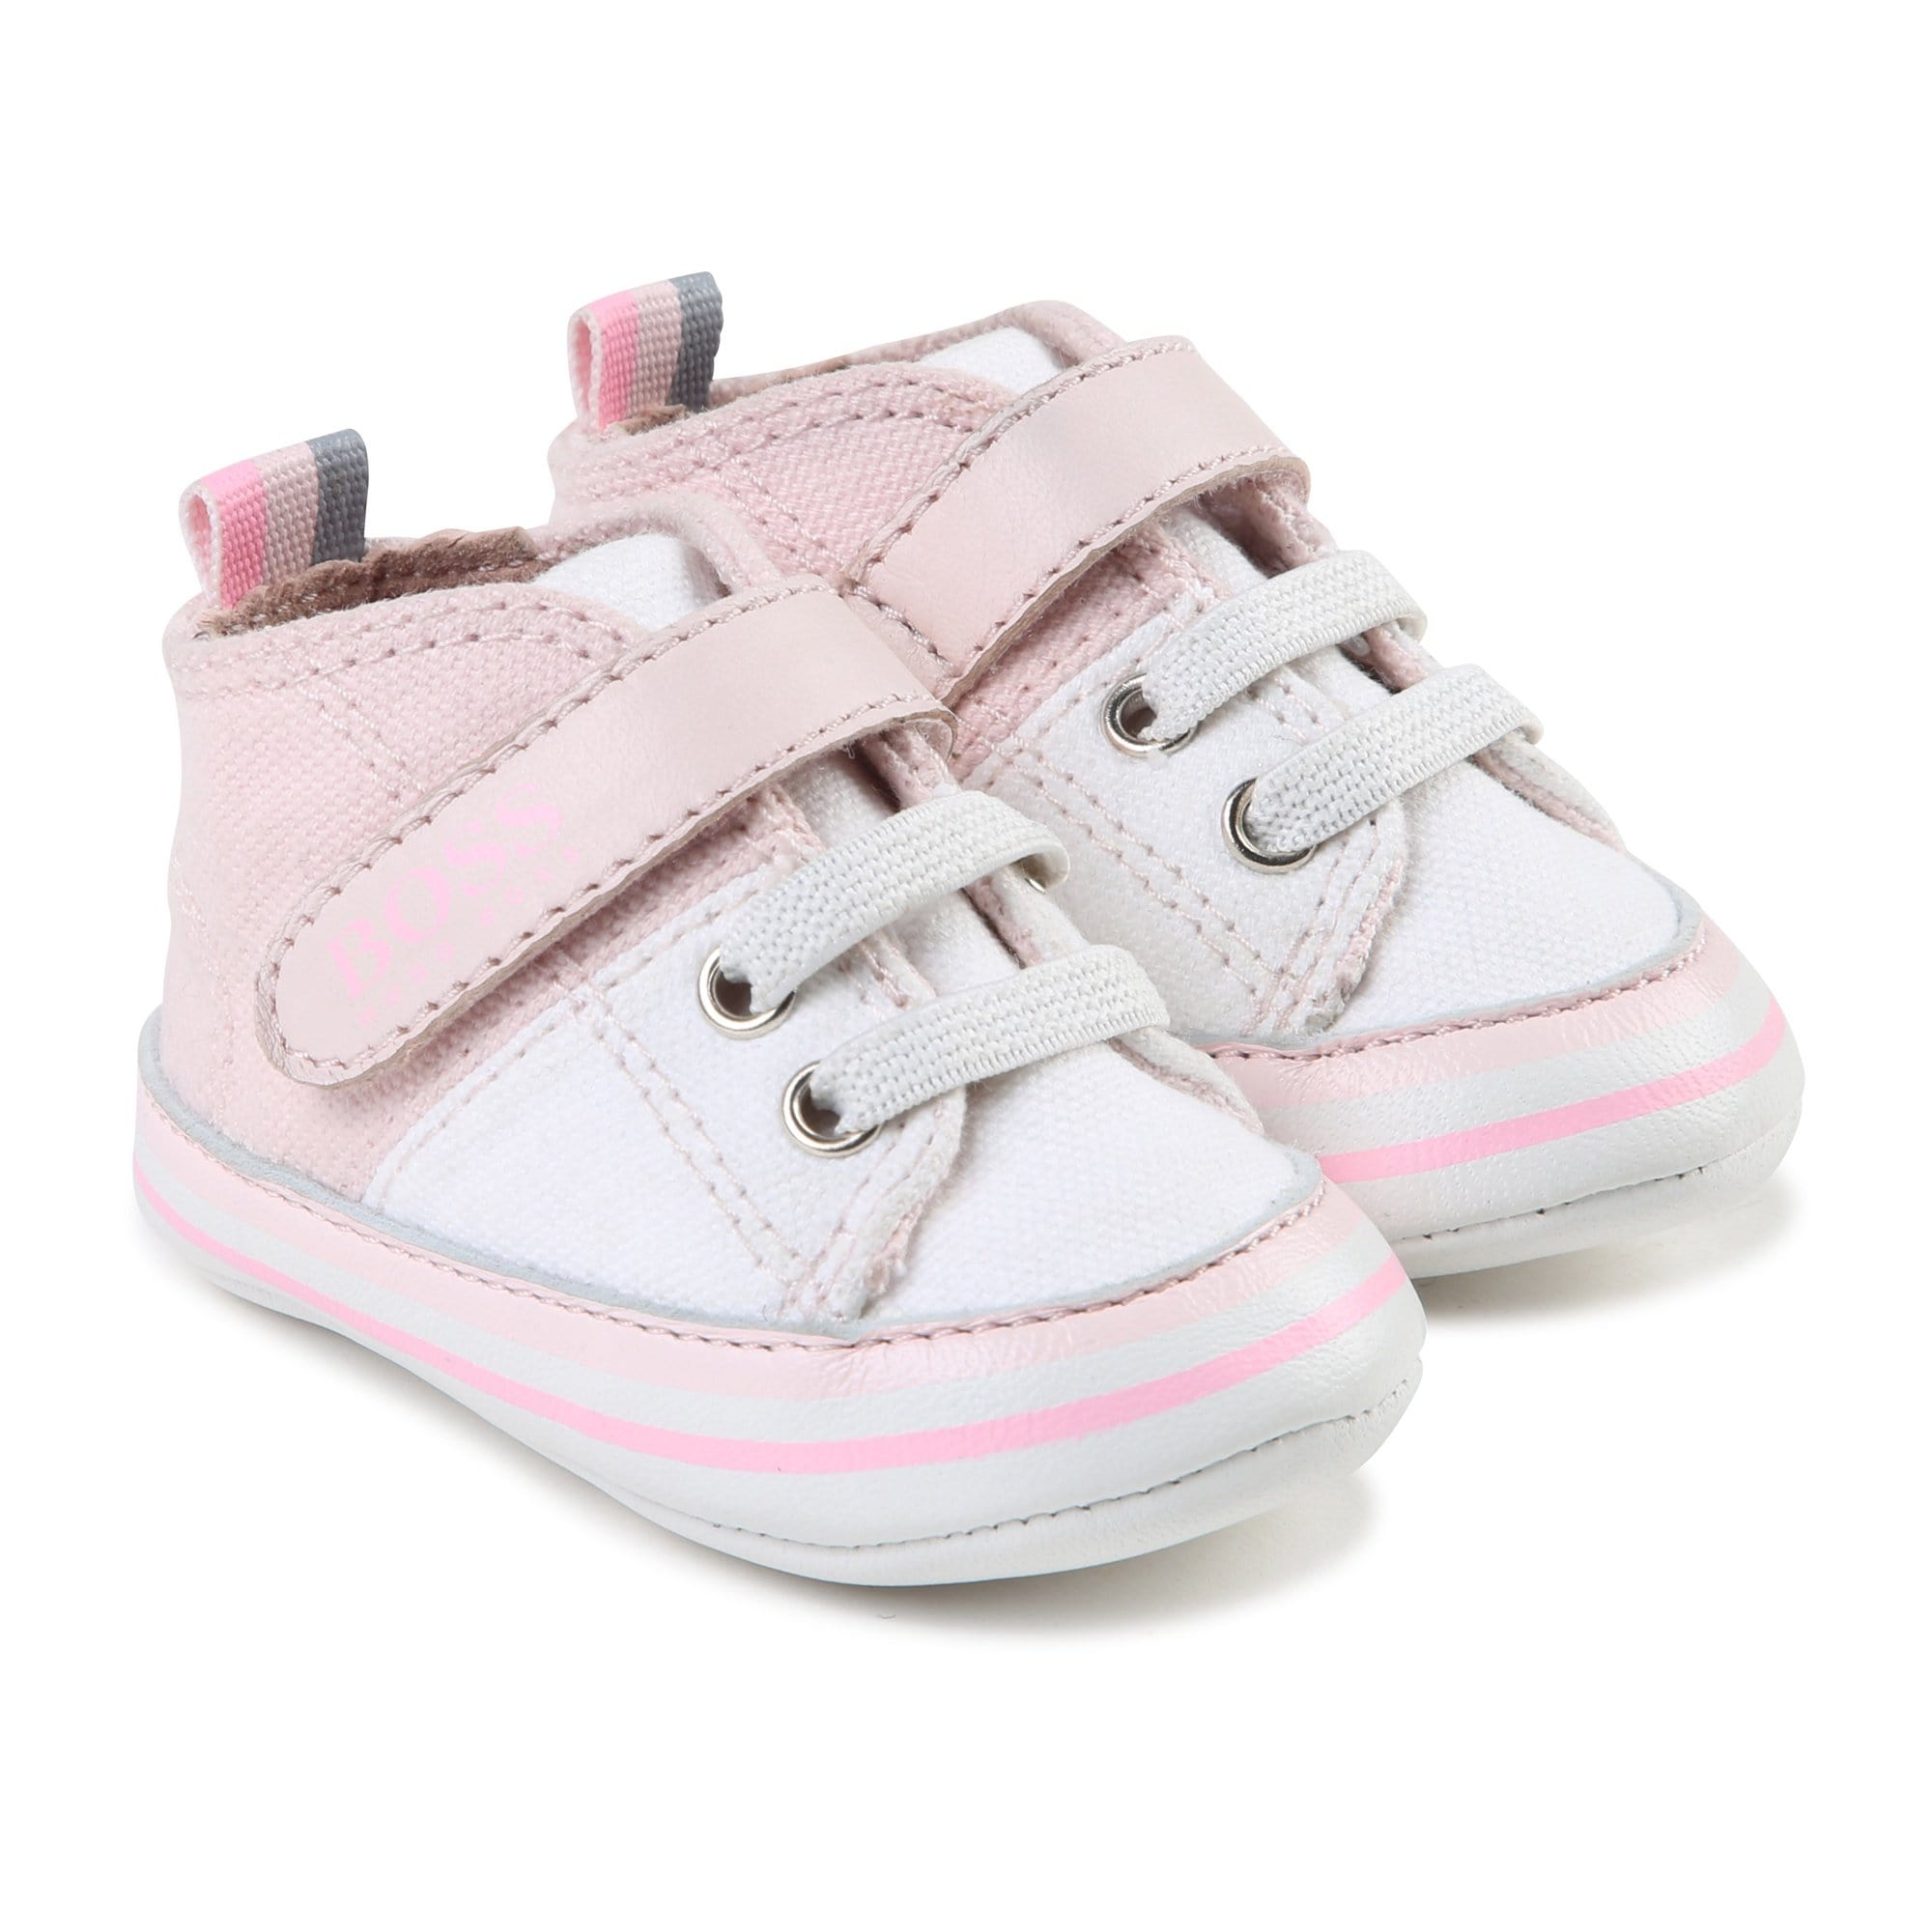 Hugo Boss Baby Girl Trainers (4693886173315)